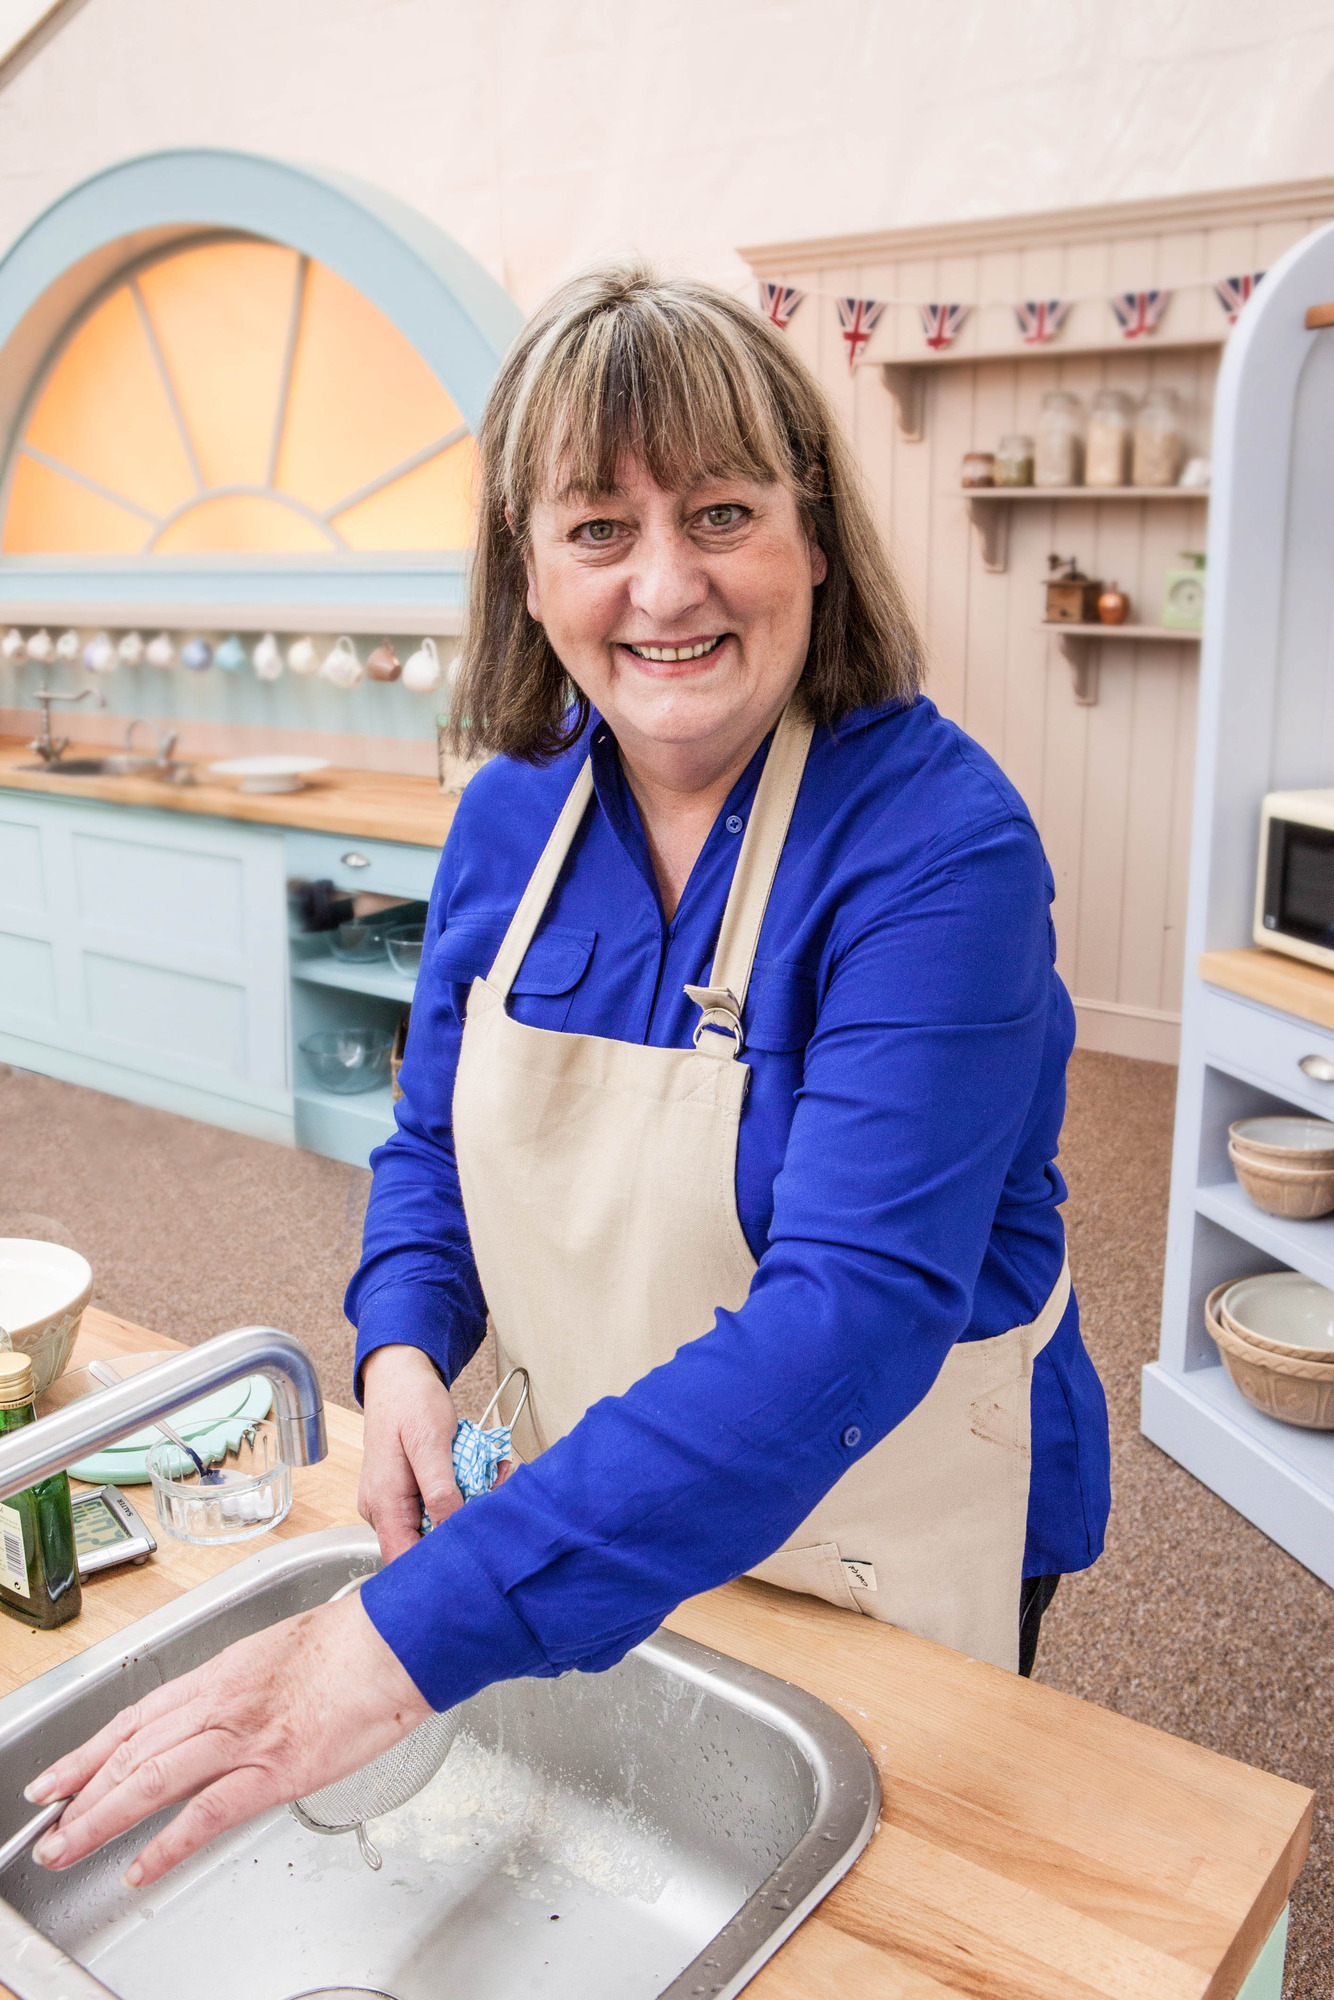 Marie from The Great British Bake Off